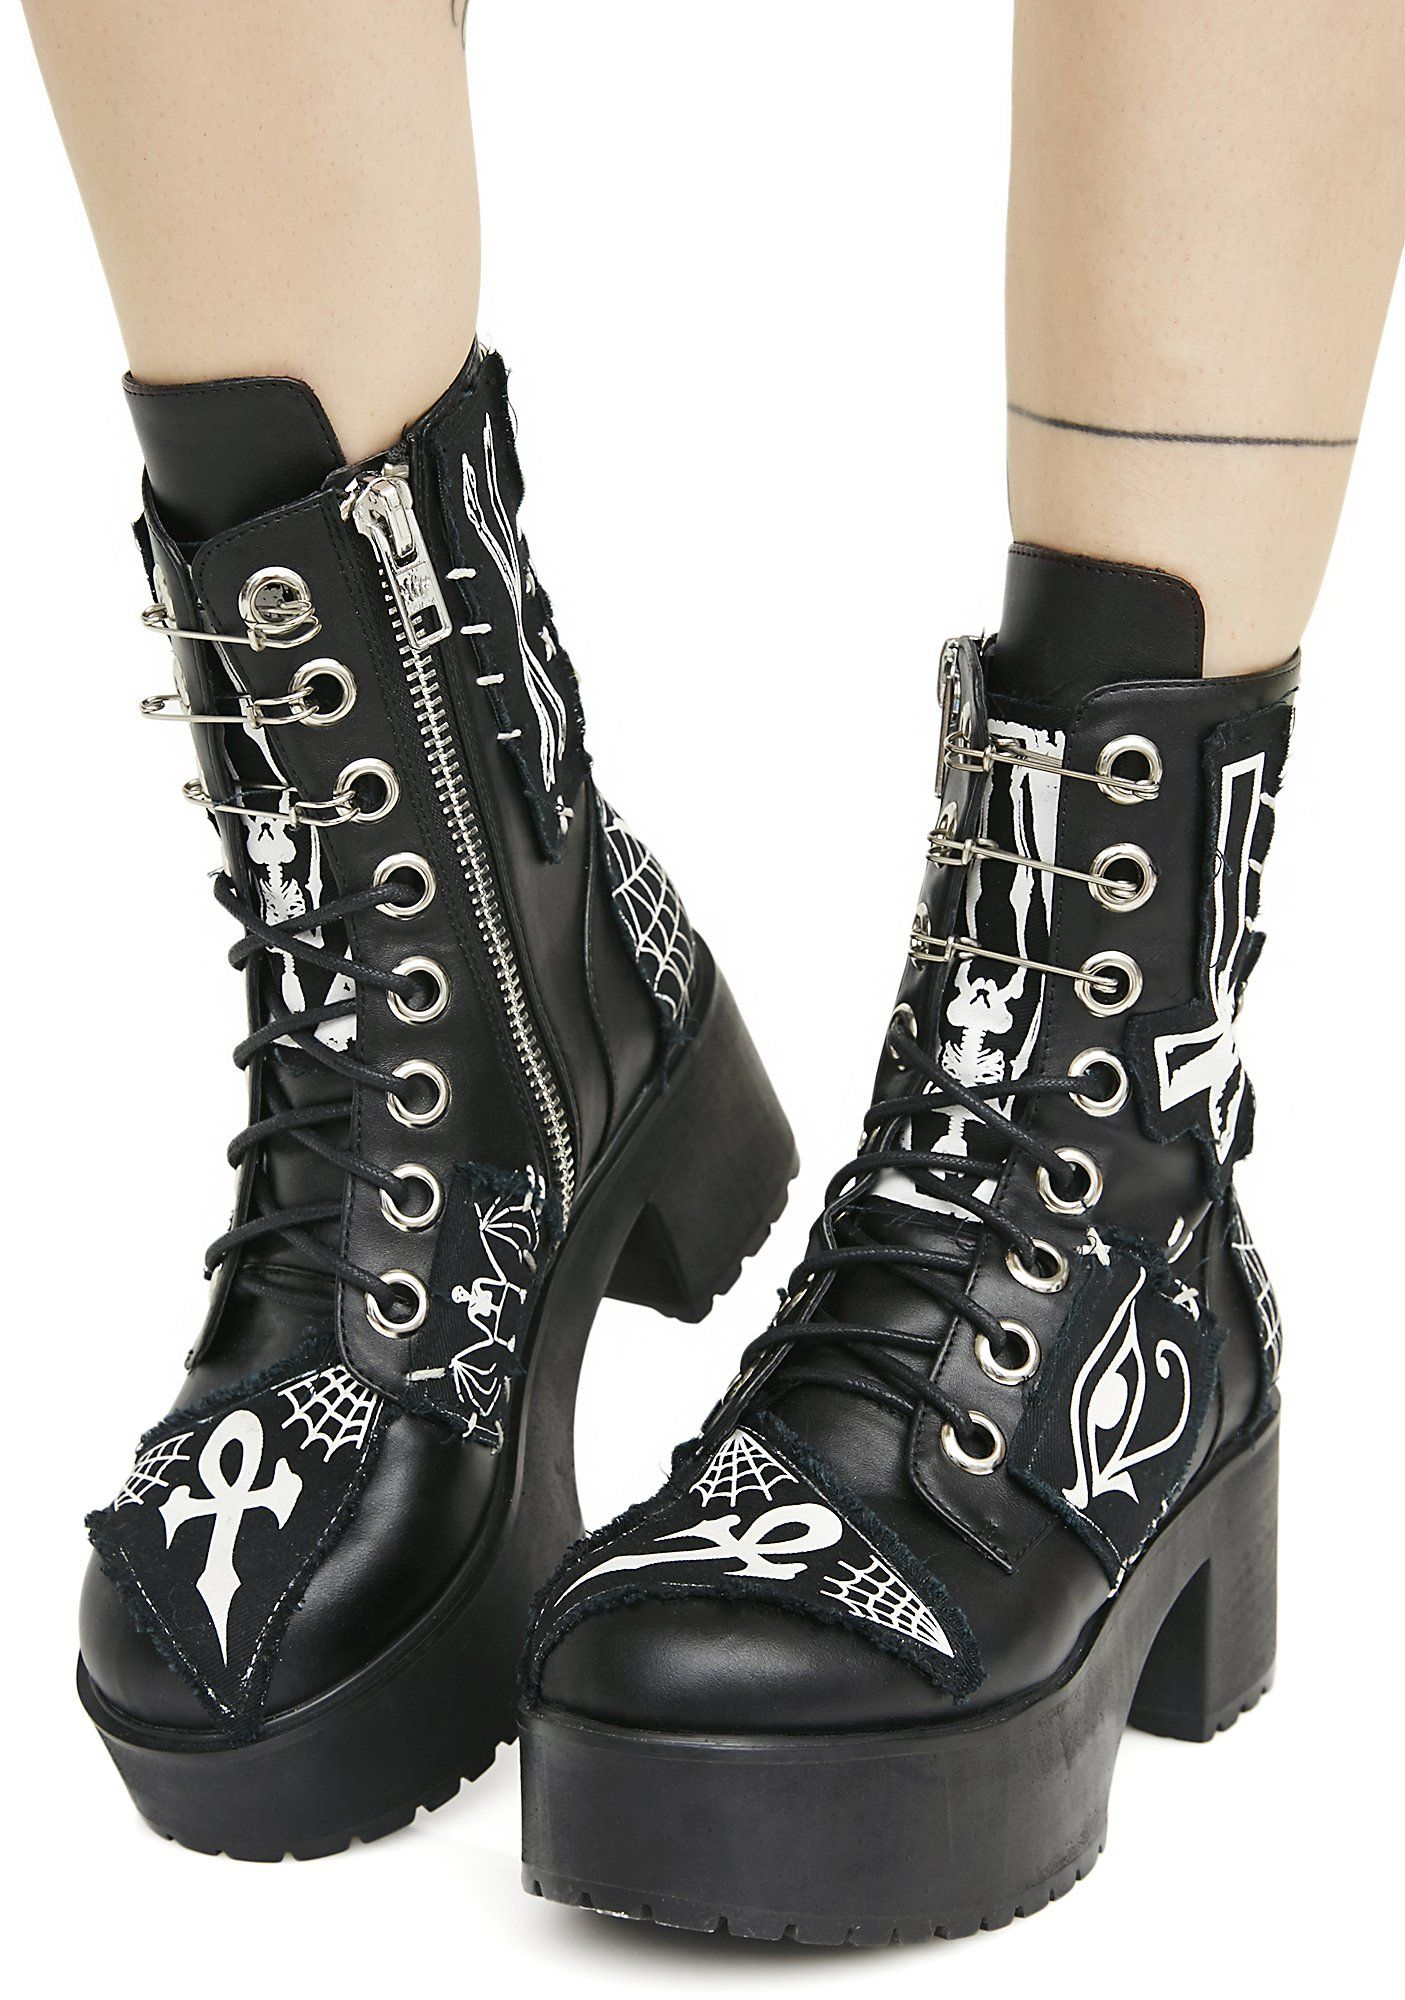 Current Mood Boots Goth boots, Boots, Gothic shoes